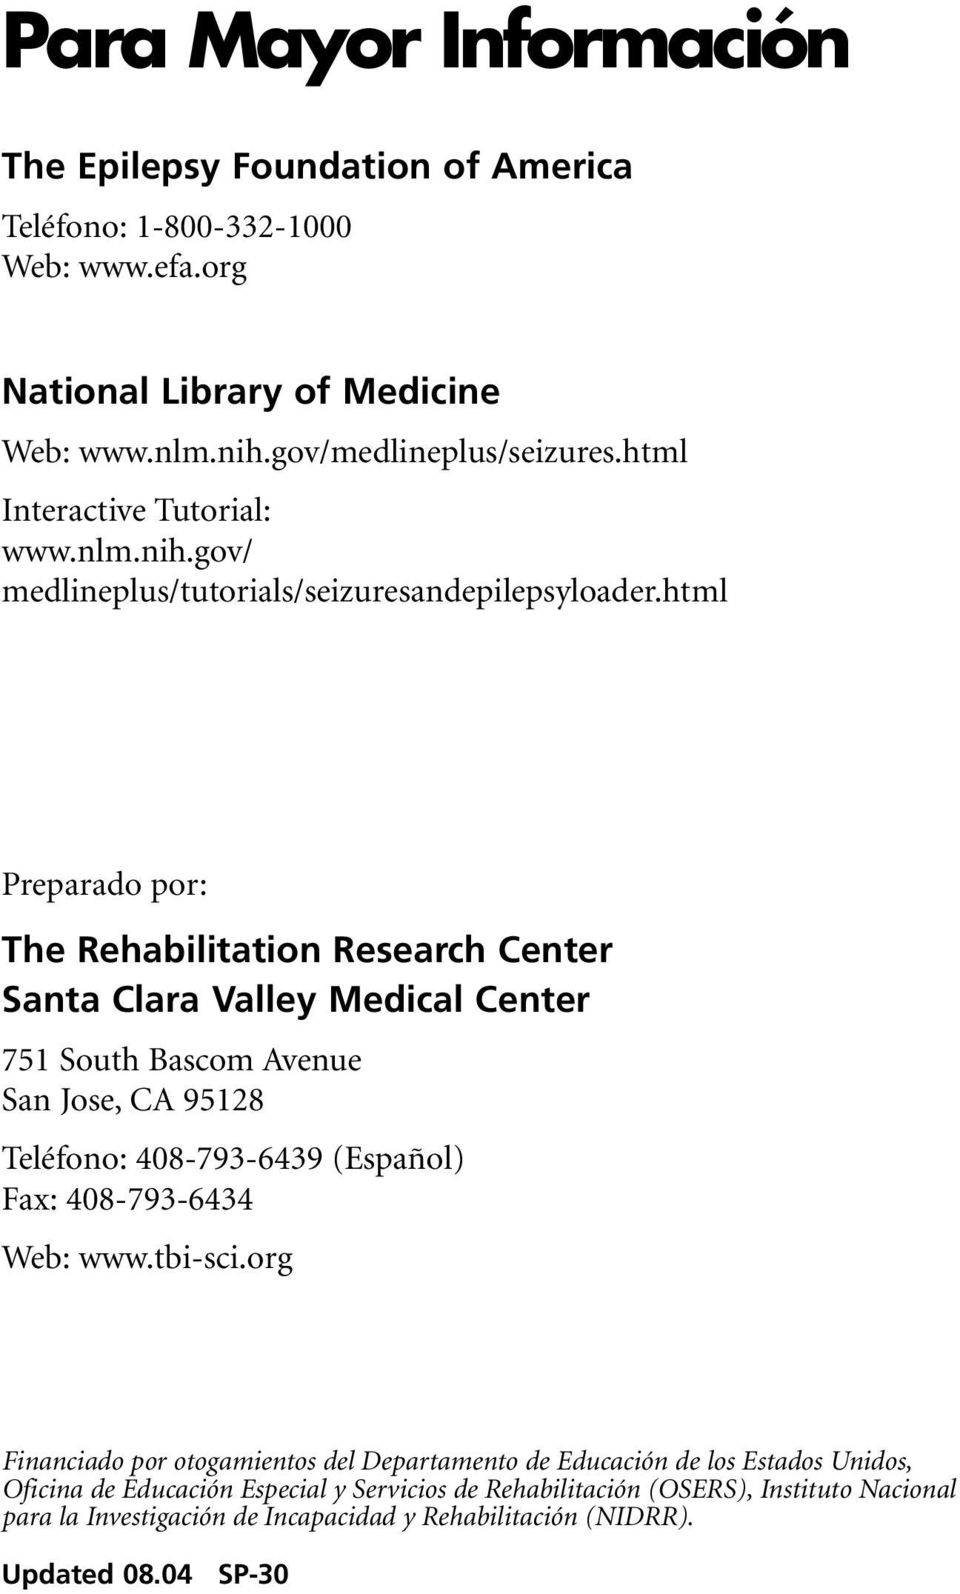 html Preparado por: The Rehabilitation Research Center Santa Clara Valley Medical Center 751 South Bascom Avenue San Jose, CA 95128 Teléfono: 408-793-6439 (Español) Fax: